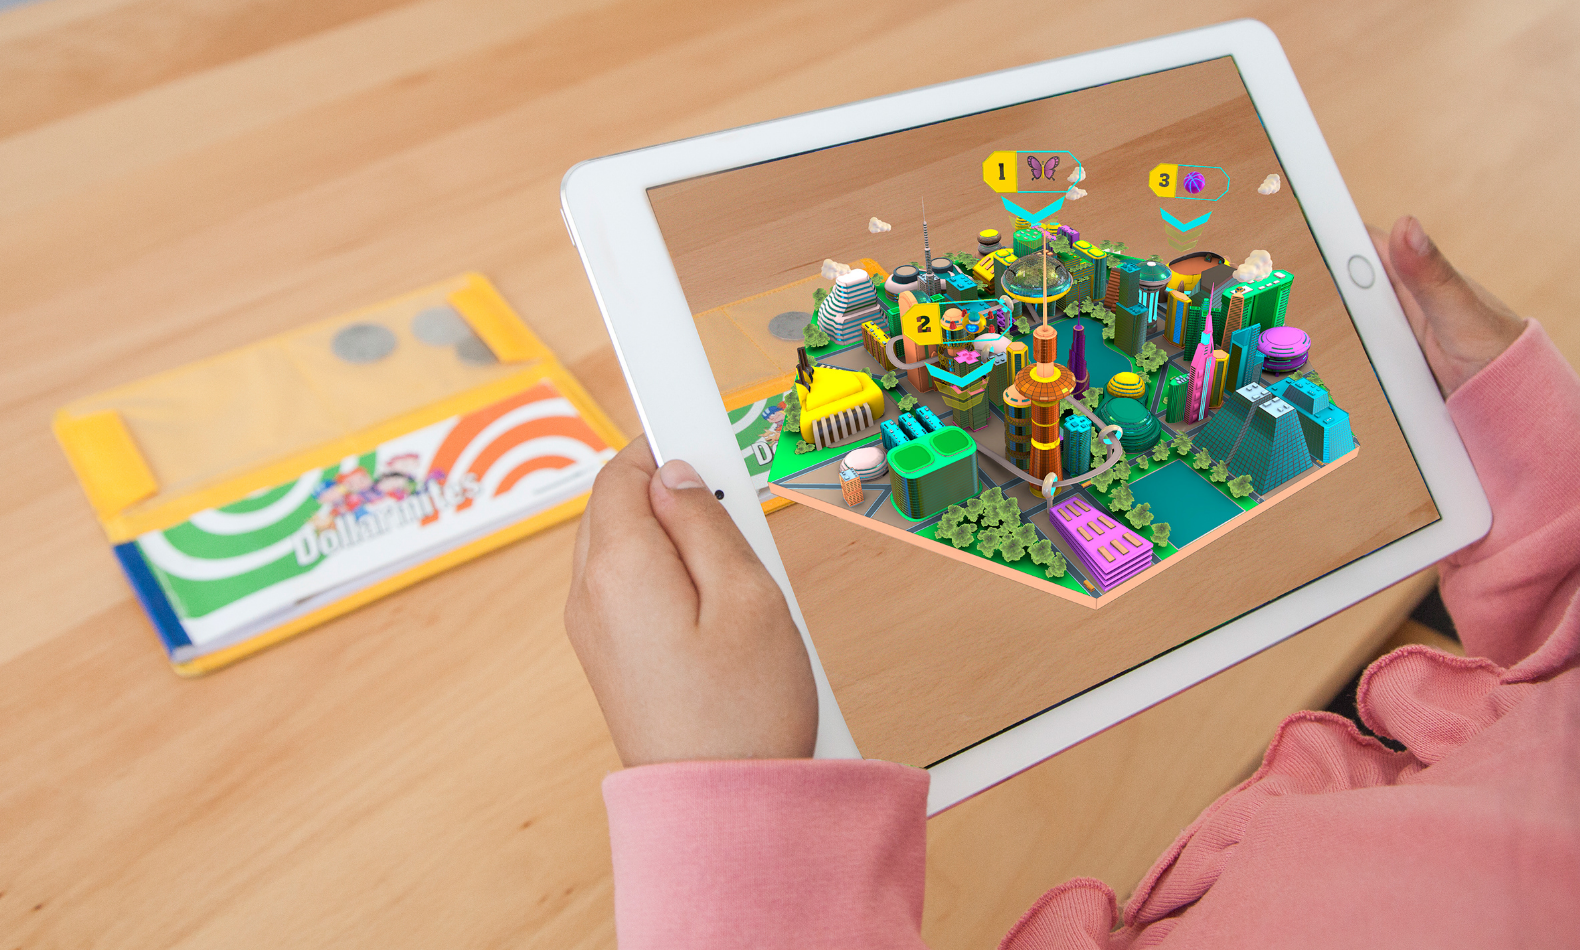 Augmented Reality for CommBank